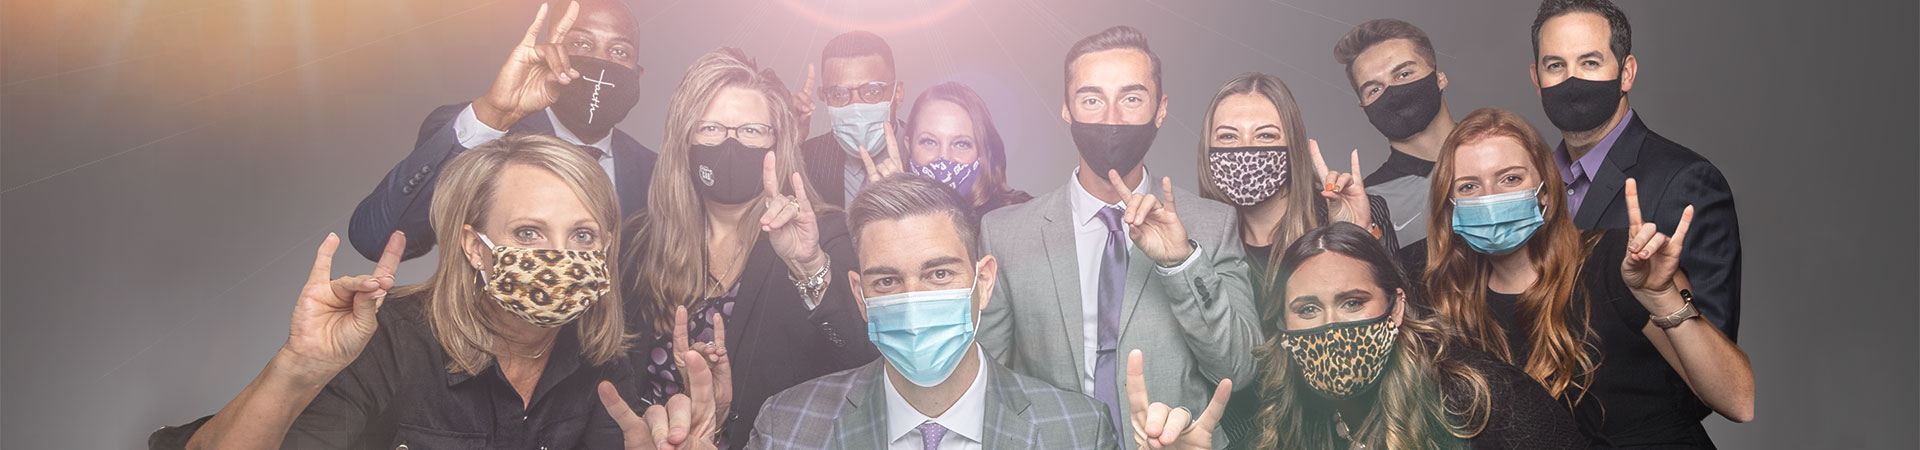 GCU Advancement team wearing masks and giving Lopes Up sign